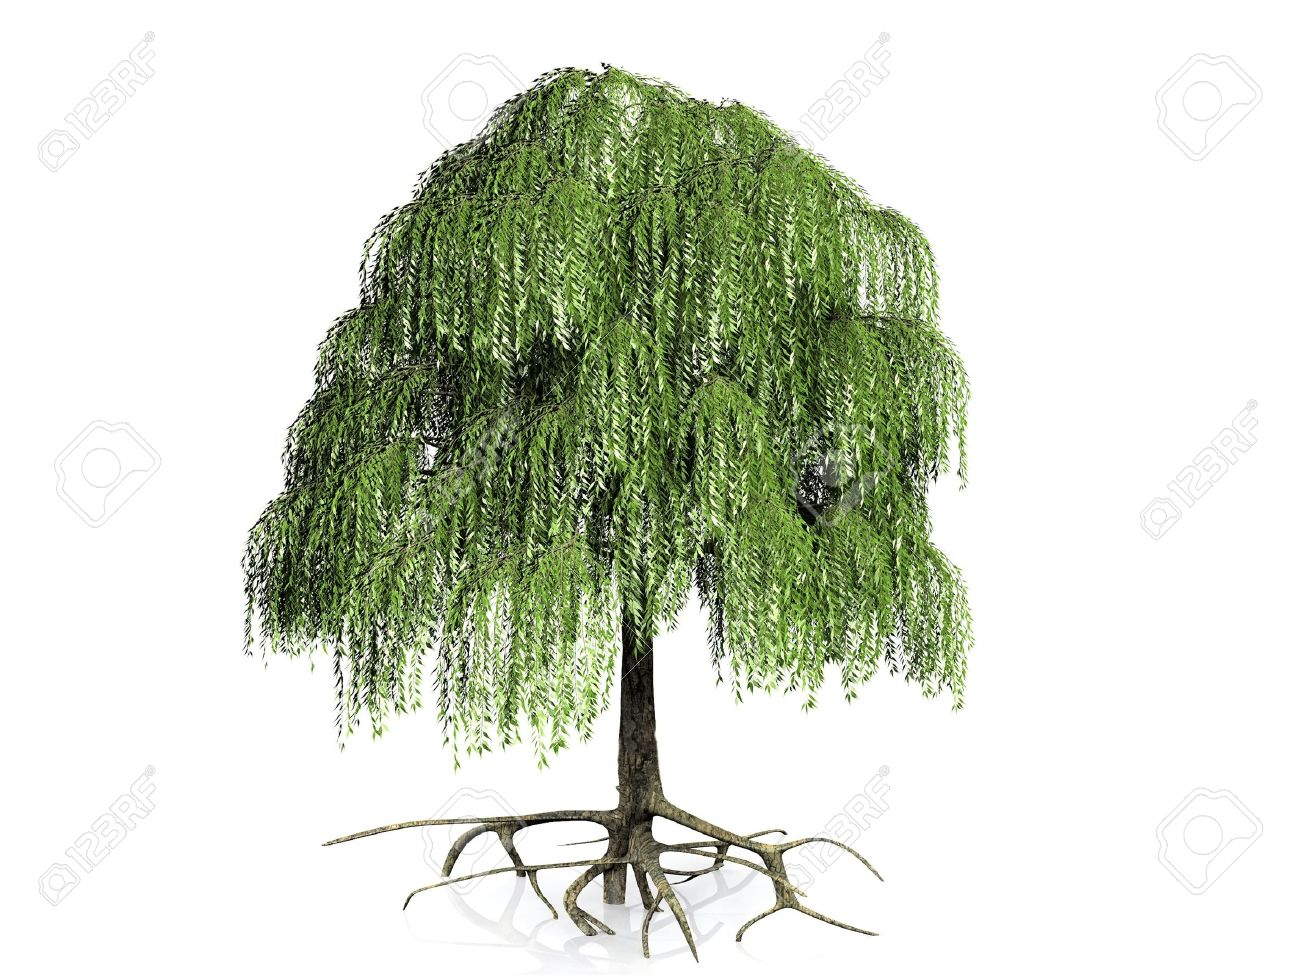 The Willow Tree On A White Background Stock Photo, Picture And ...